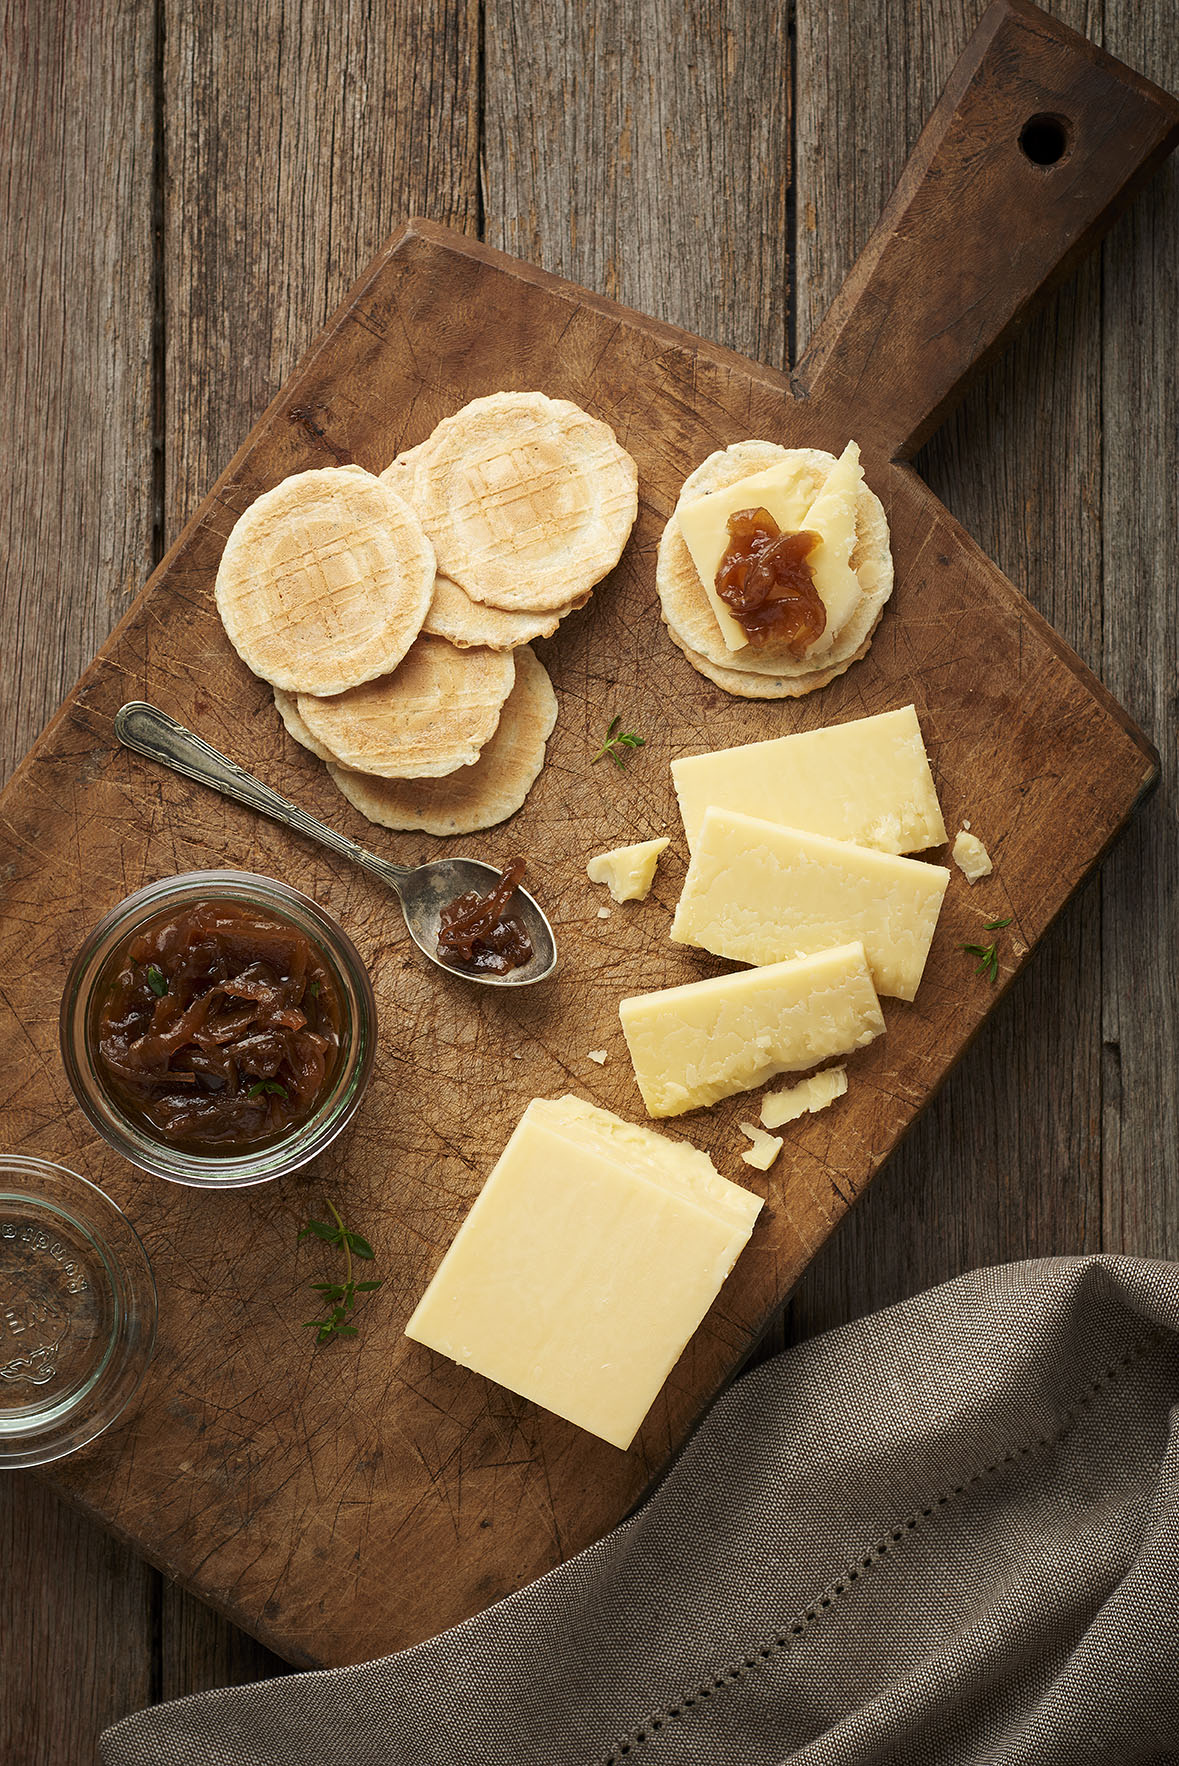 Warrnambool Cheese & Butter - Cracker Barrell Extra Sharp